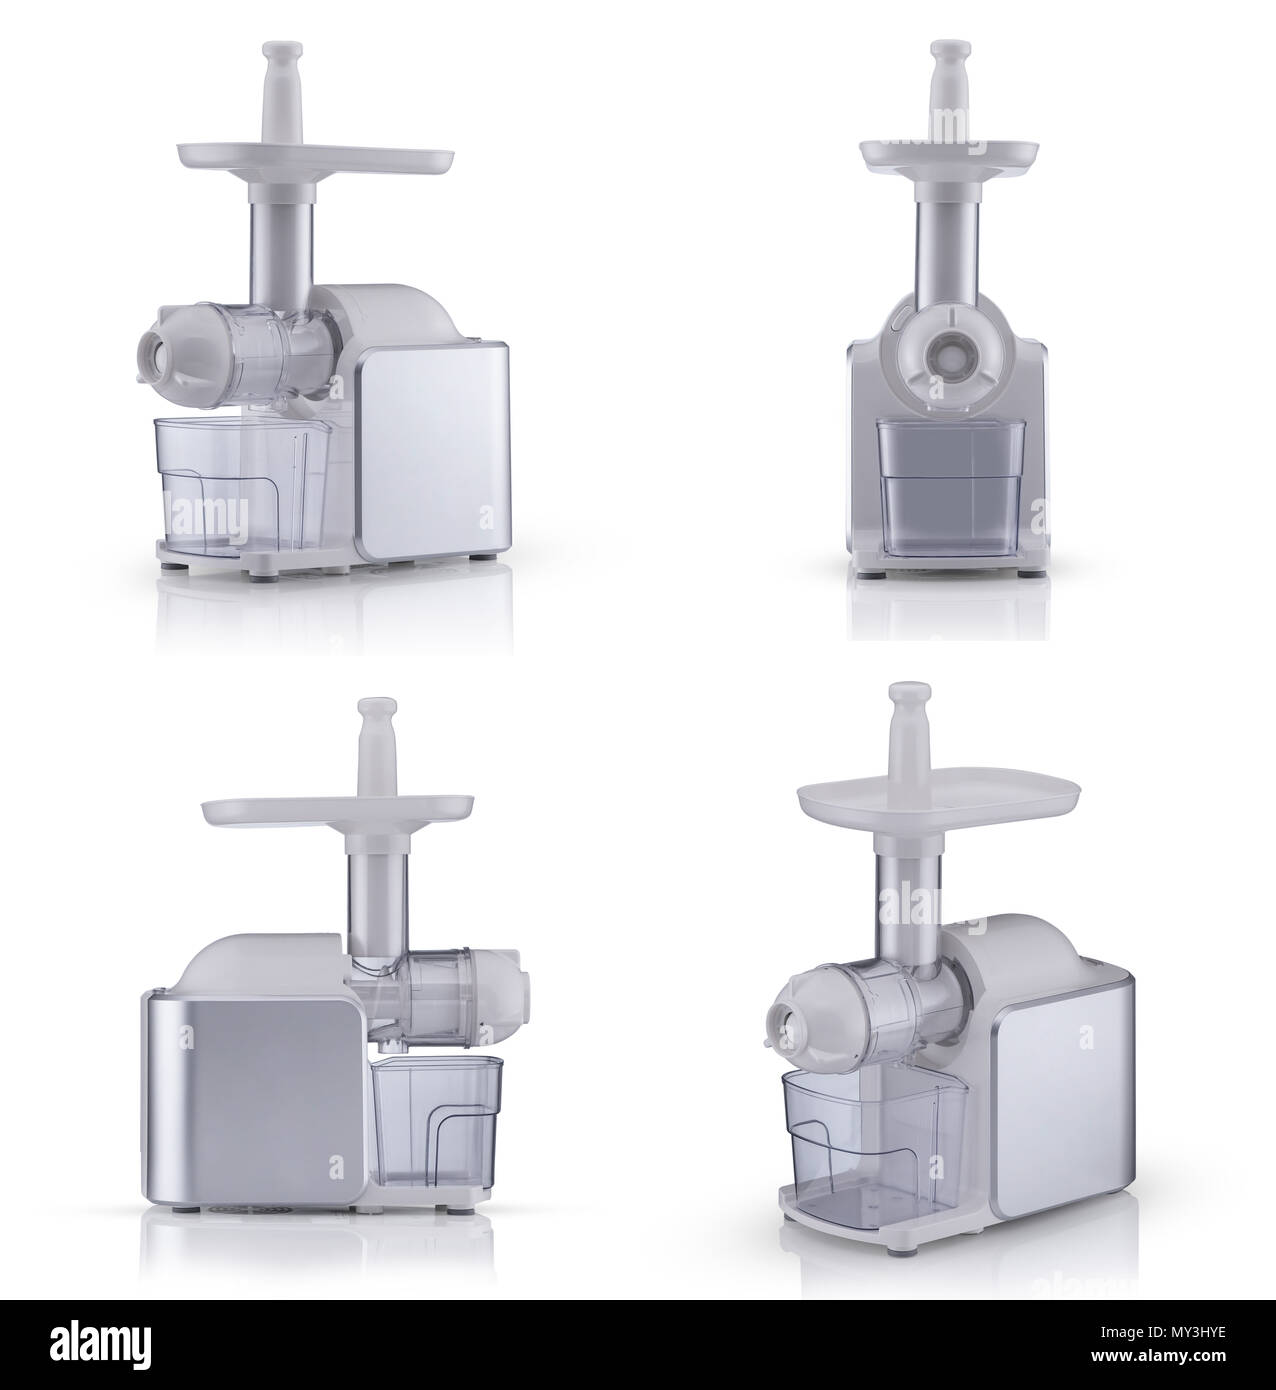 household electric meat grinder on a white background, different ...